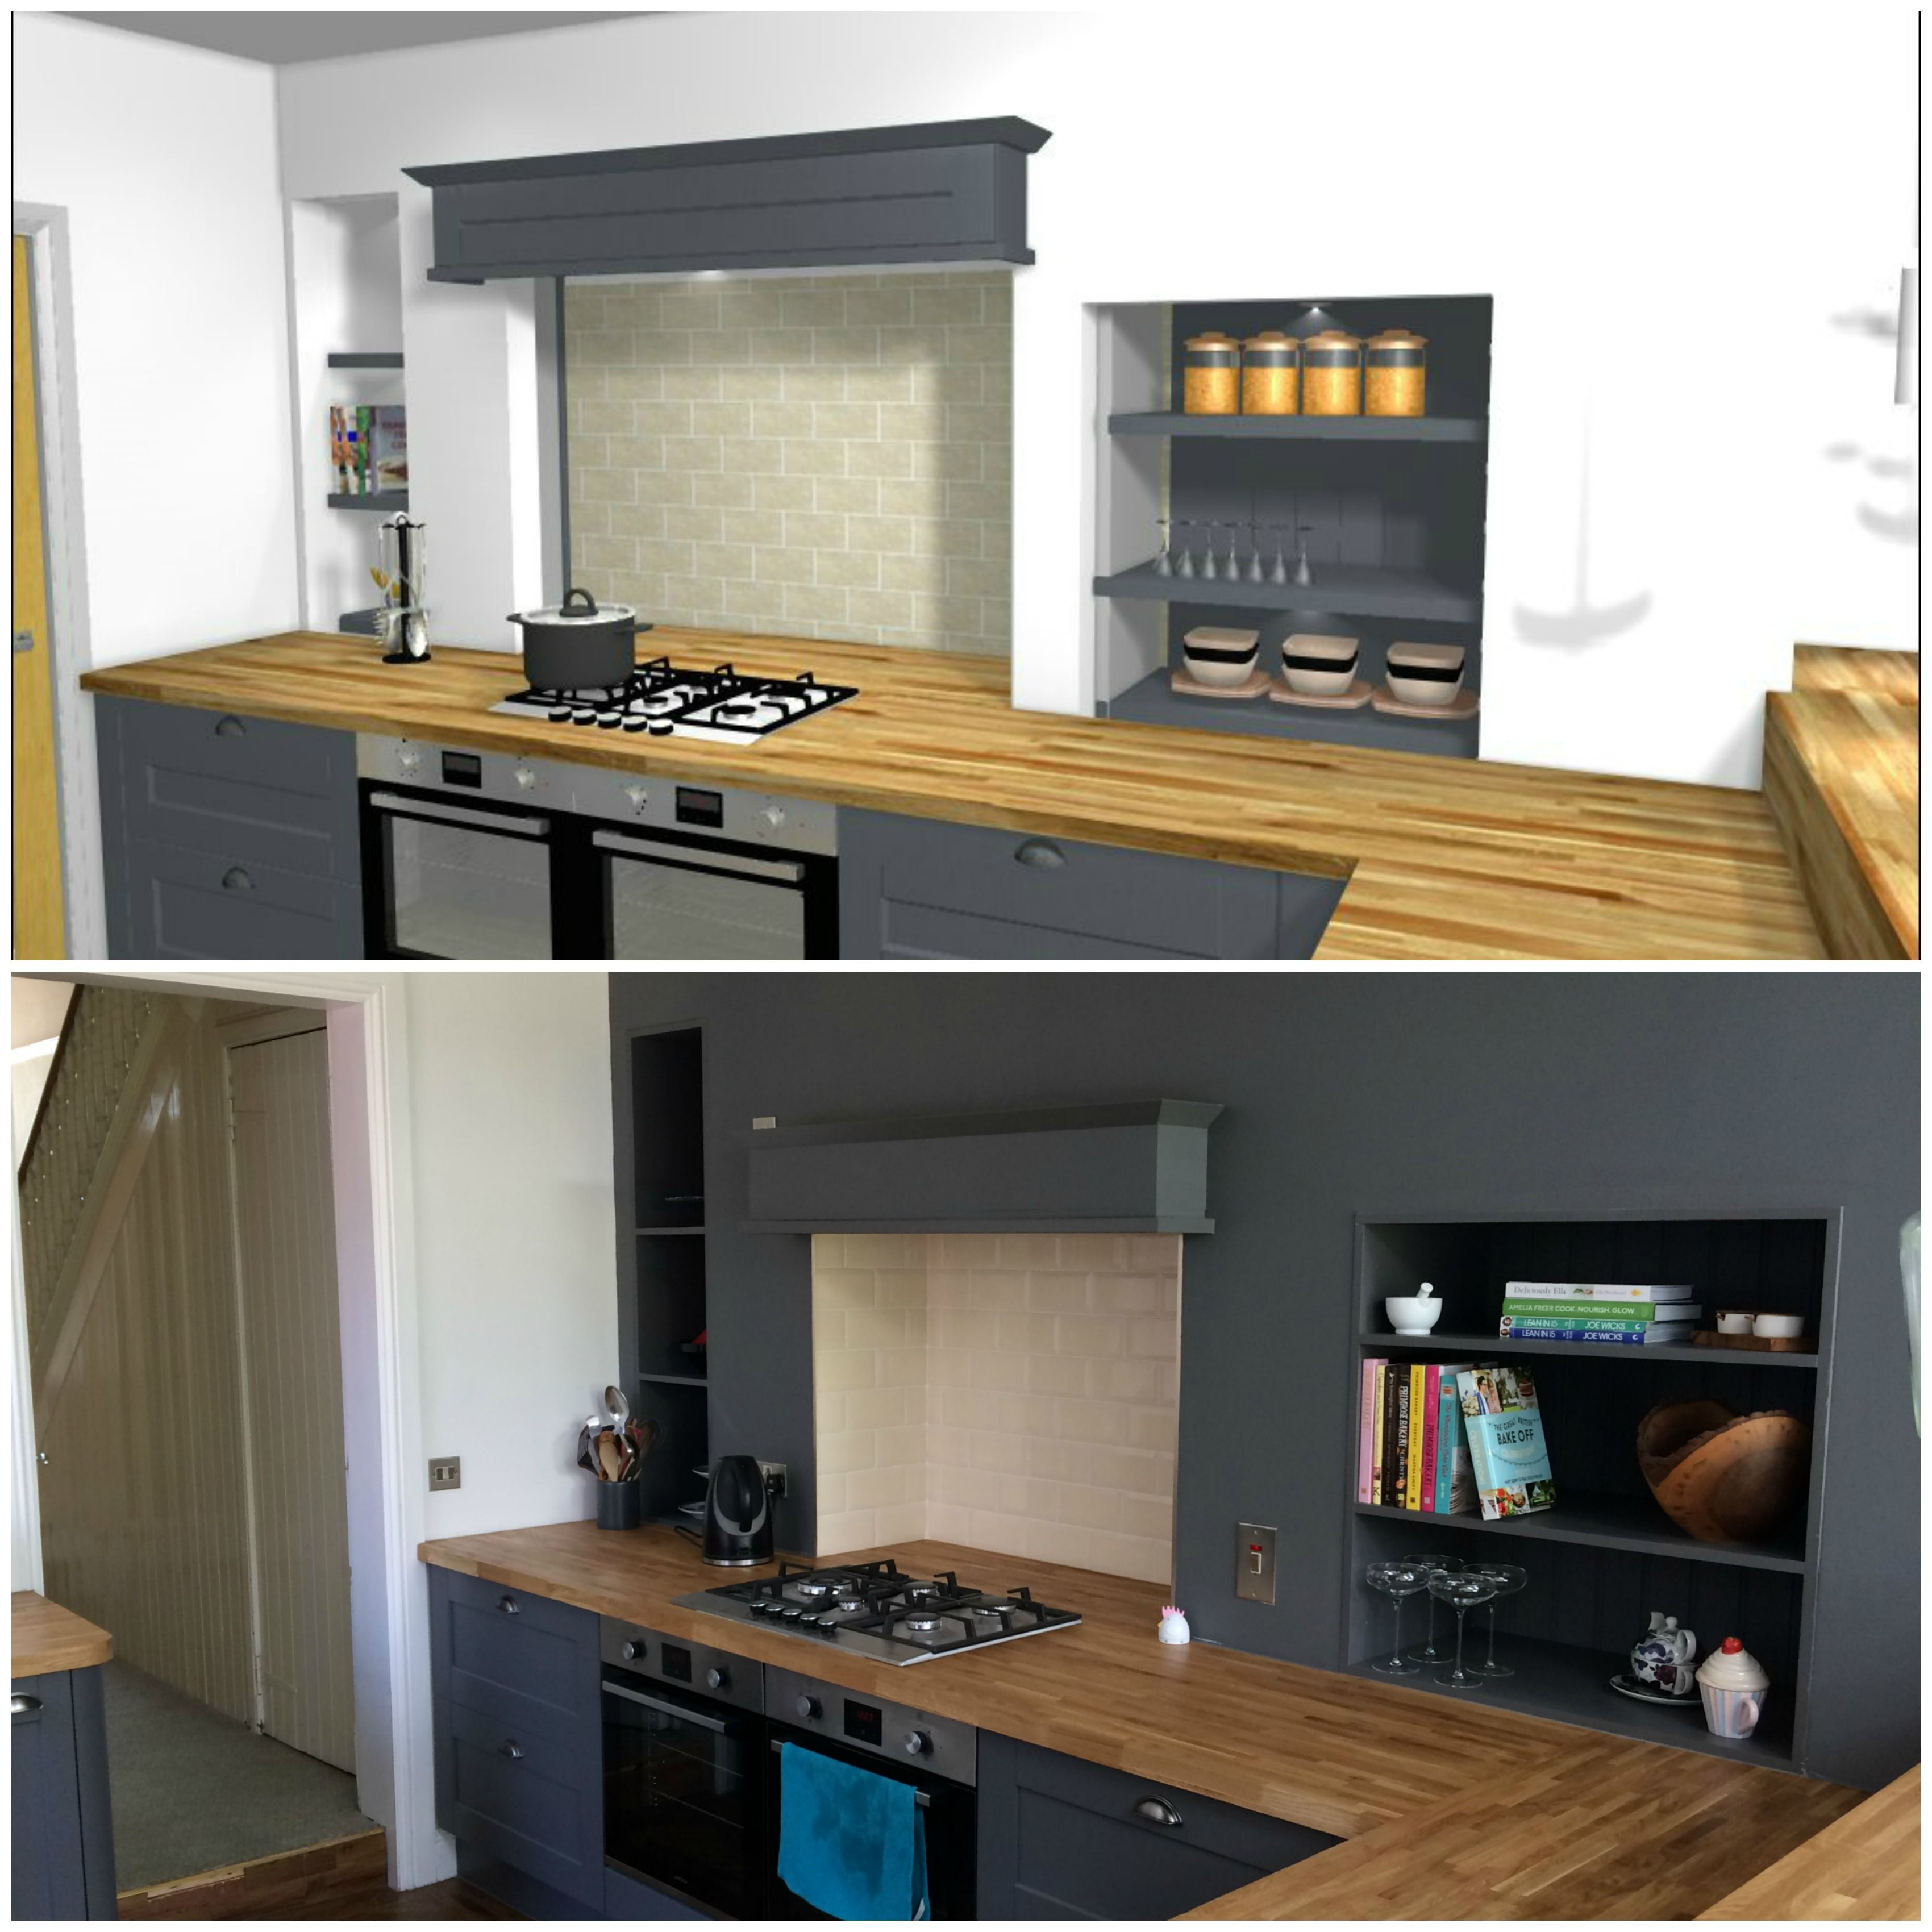 Howdens Kitchen Base Cabinets The Uk 39s Largest Manufacturer Of Kitchens And Joinery In